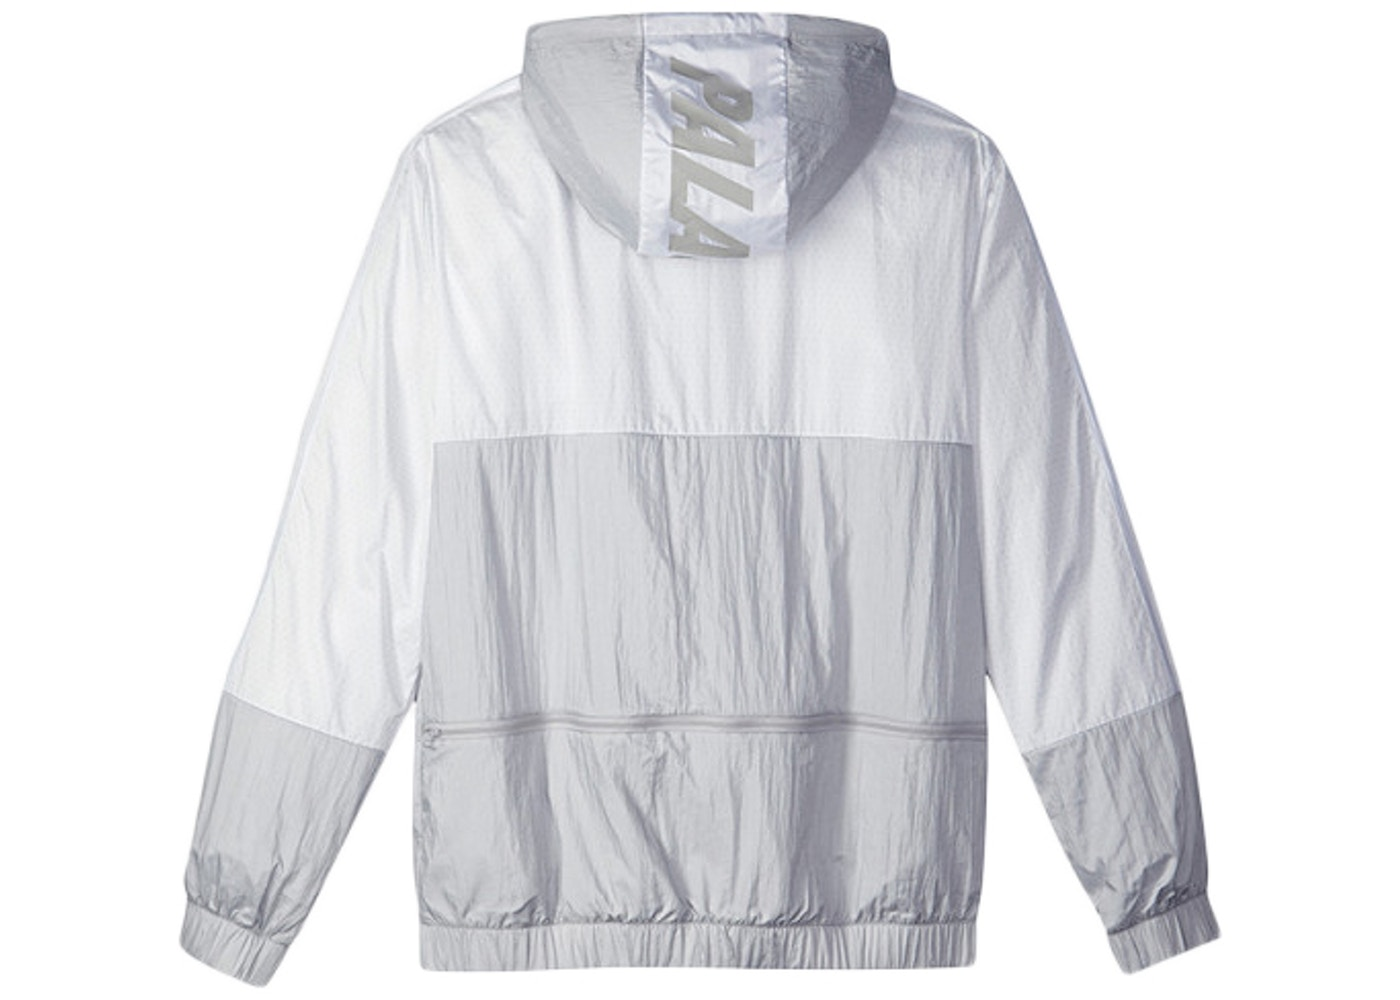 Palace adidas Packable Windbreaker 1 Light Grey Solid Grey White - SS15 0b40b8f11